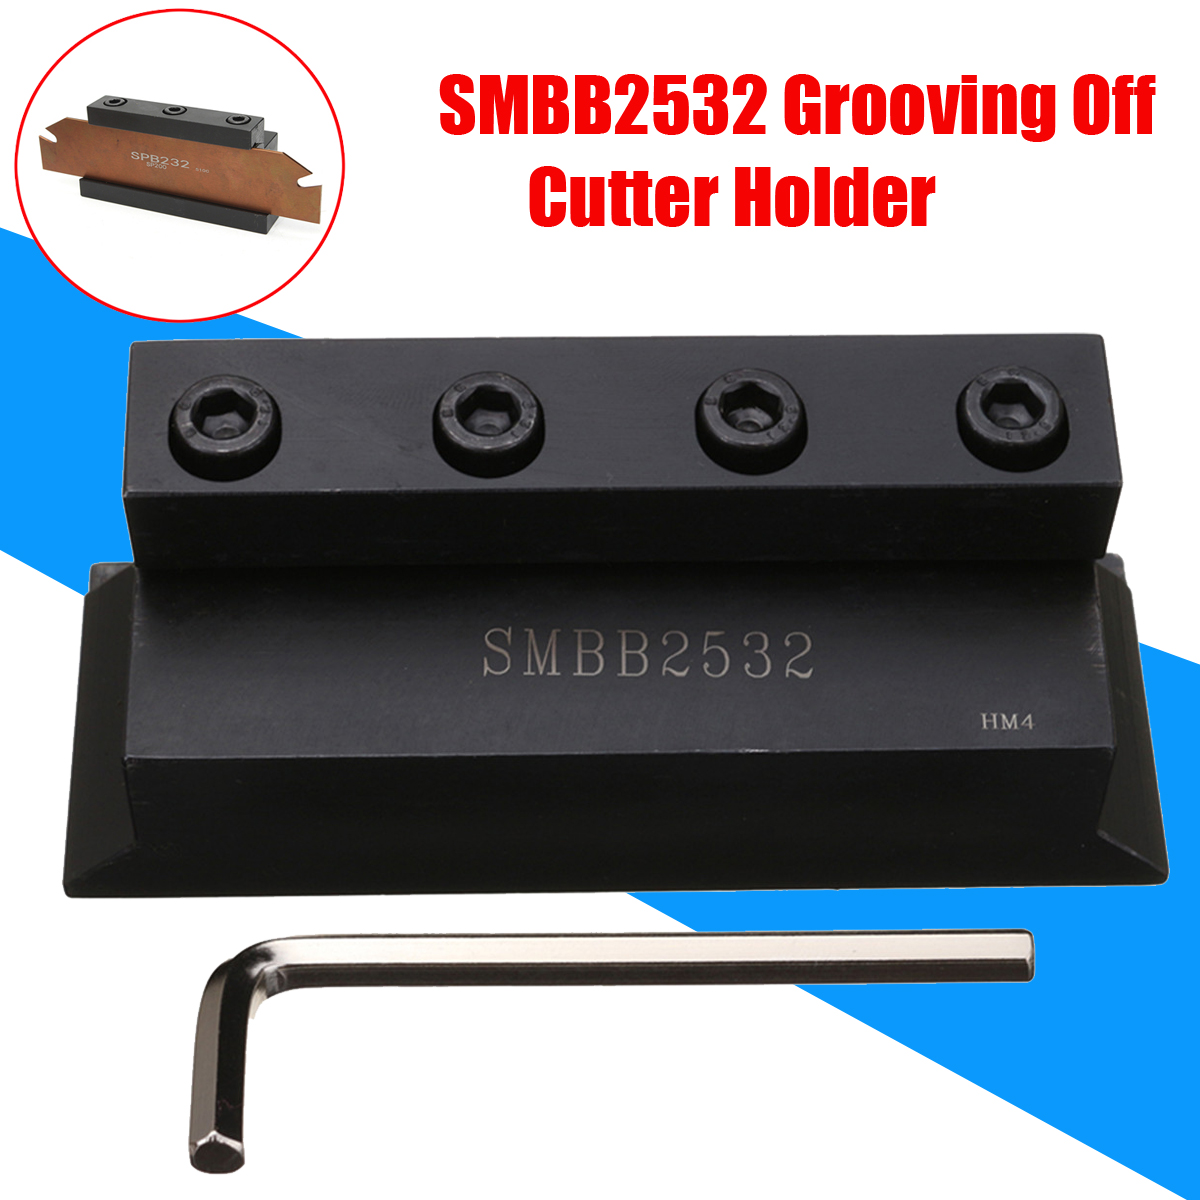 1Pc SMBB2532 Cut-Off Blade Holder 25mm for Lathe Cutting Tool with T Wrench for CNC Milling Cutter Tool free shiping smbb 2526 part off block indexable parting off tool stand holder 25mm high blade 26mm tool post for lathe